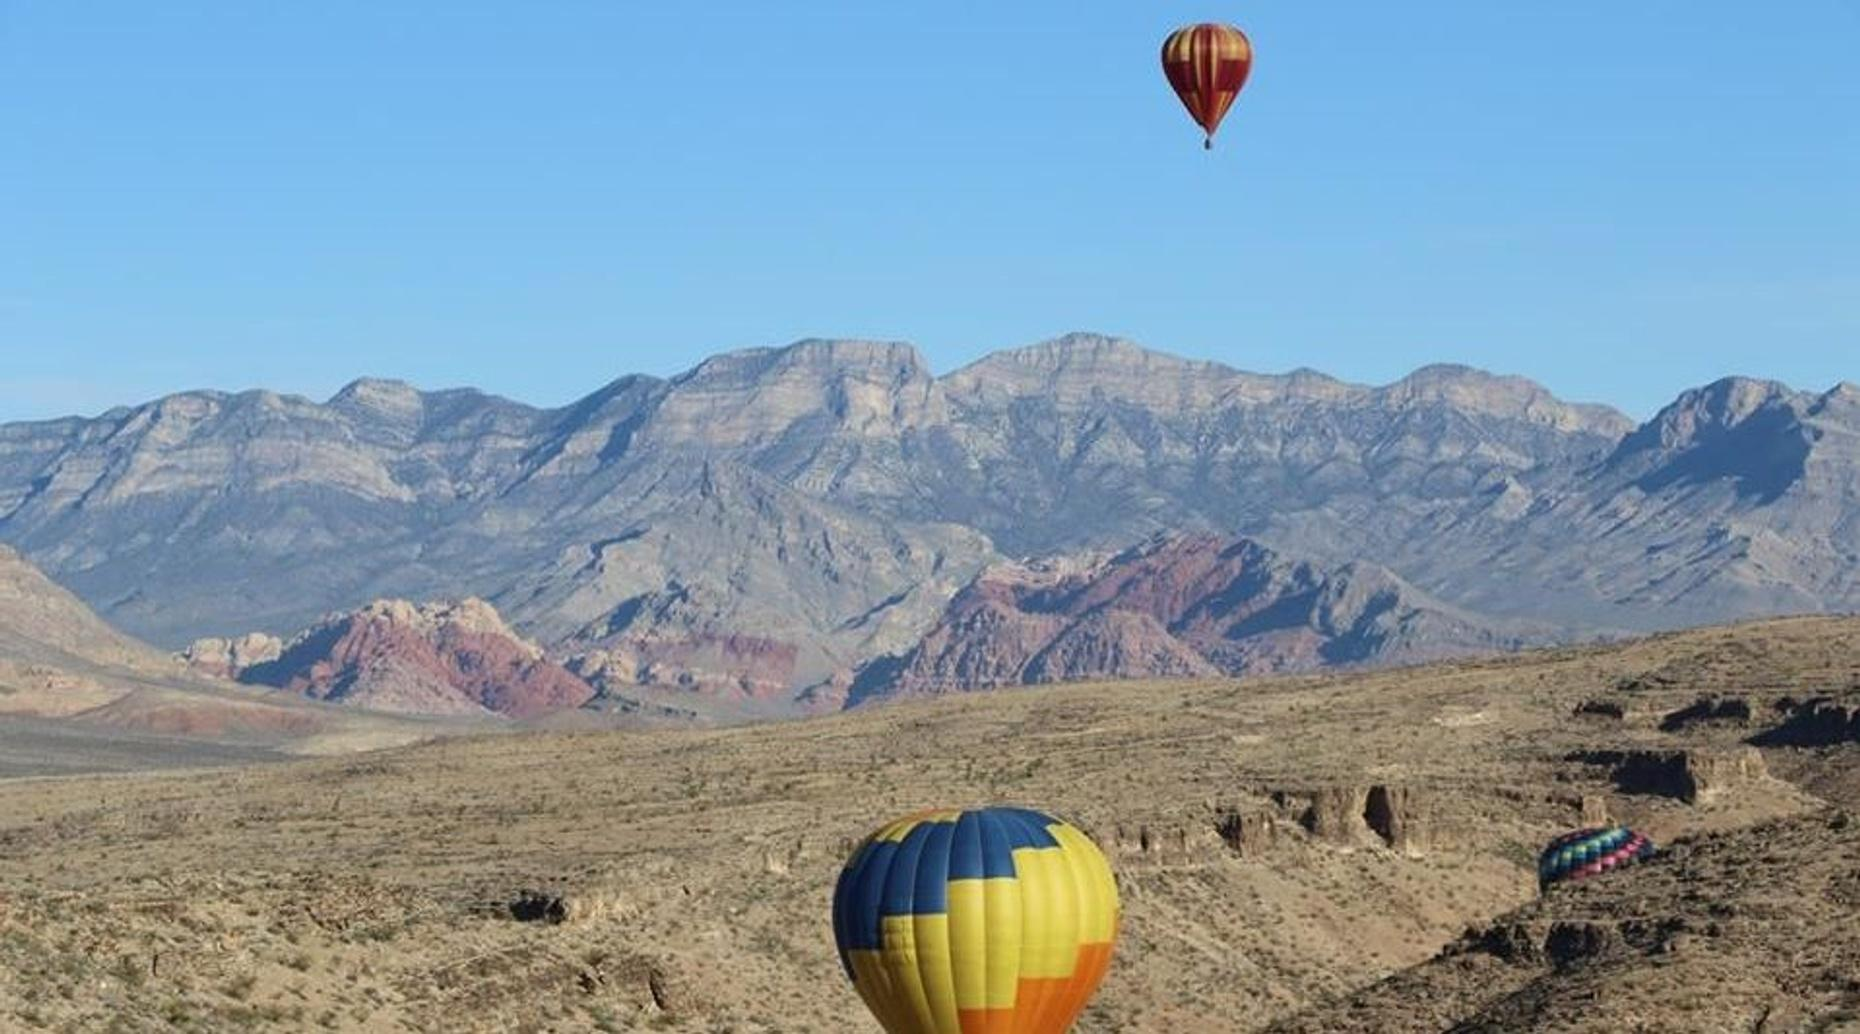 Las Vegas Hot Air Balloon Morning Ride